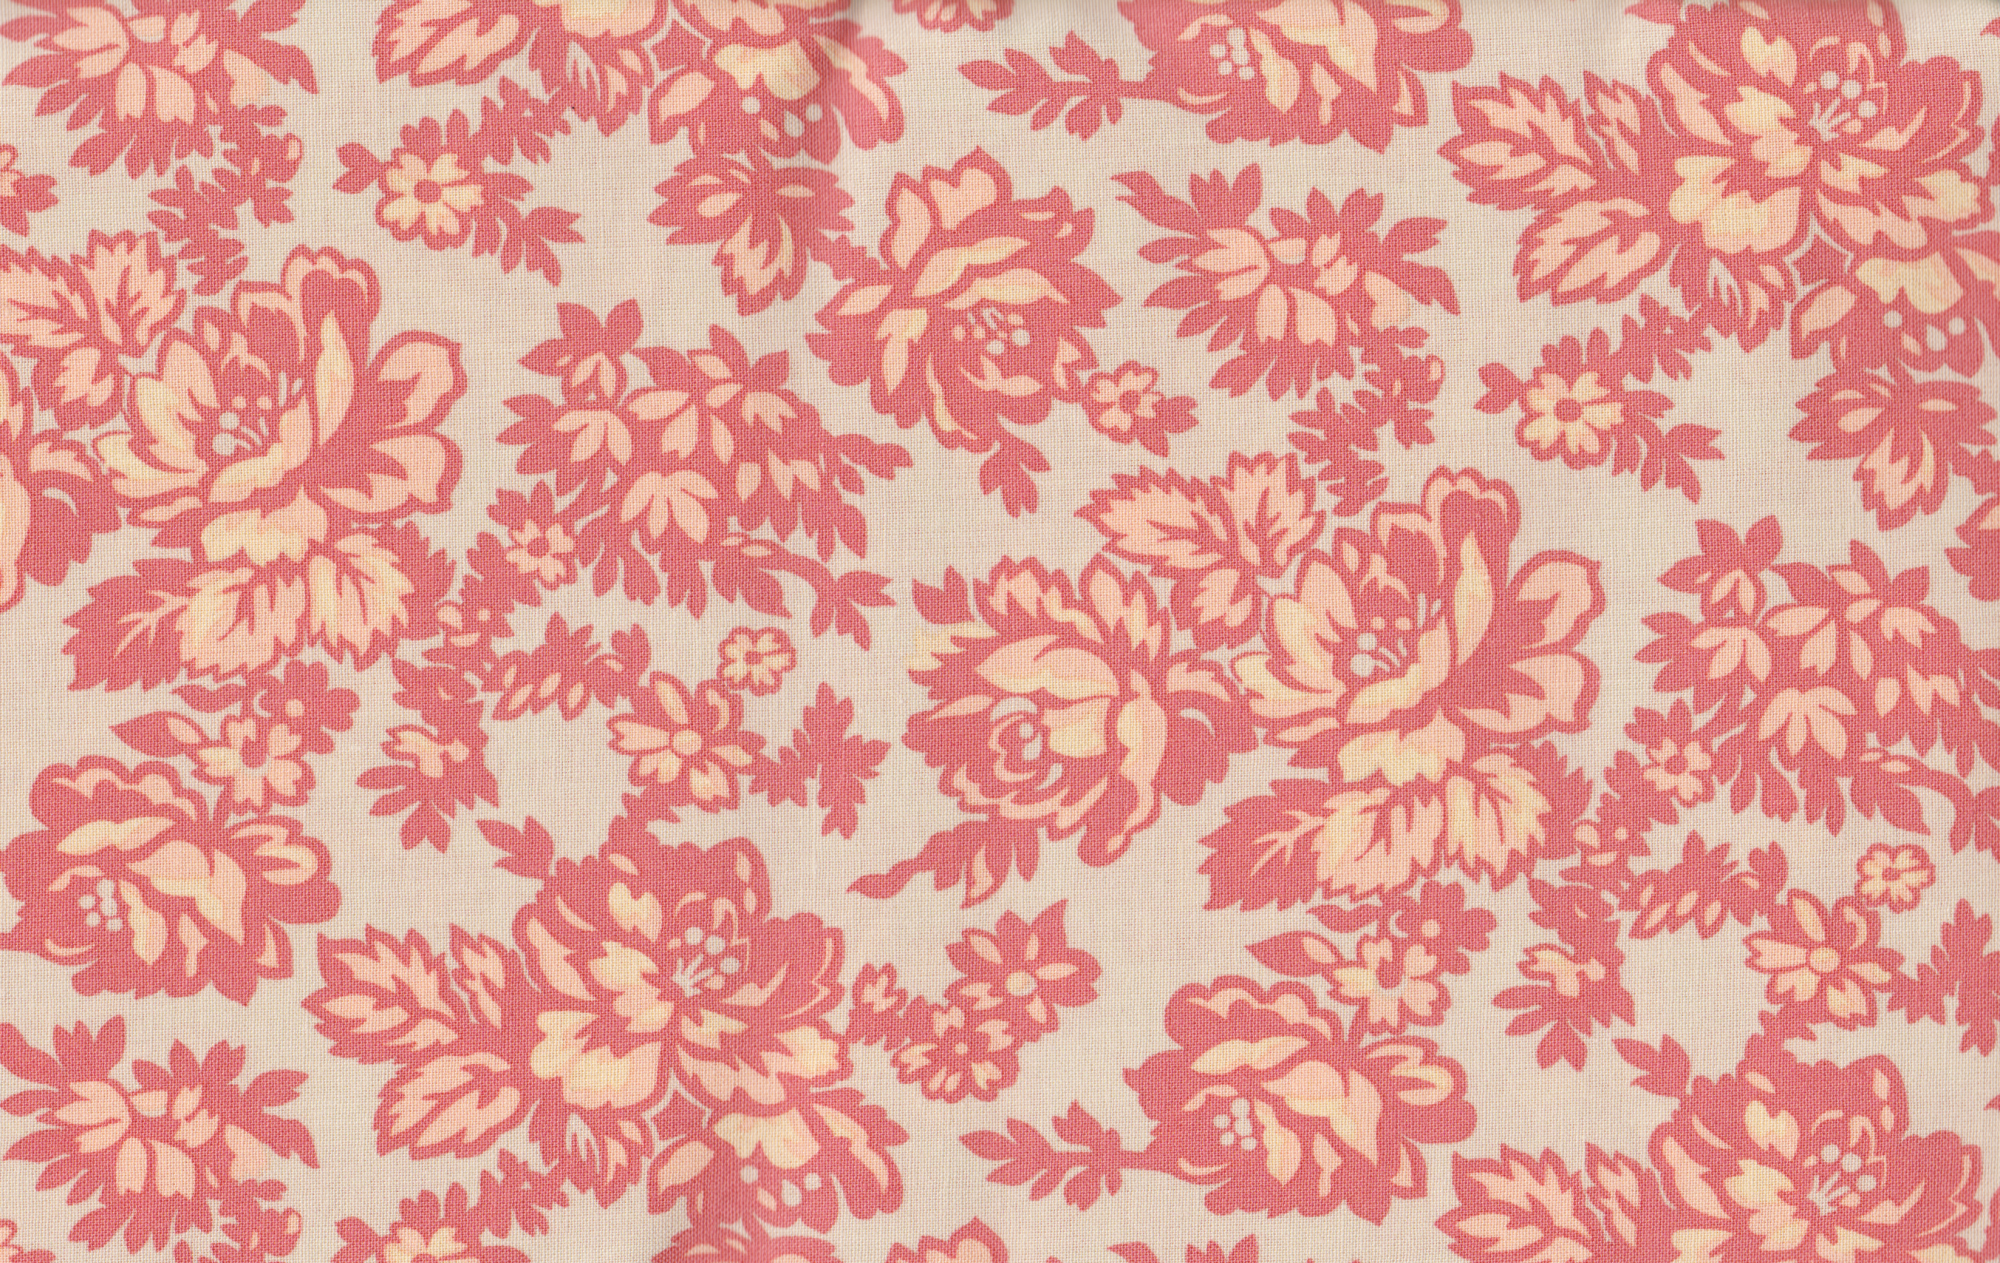 PROMO* Boundless Pre Cuts - 42903 Coral Damask Floral